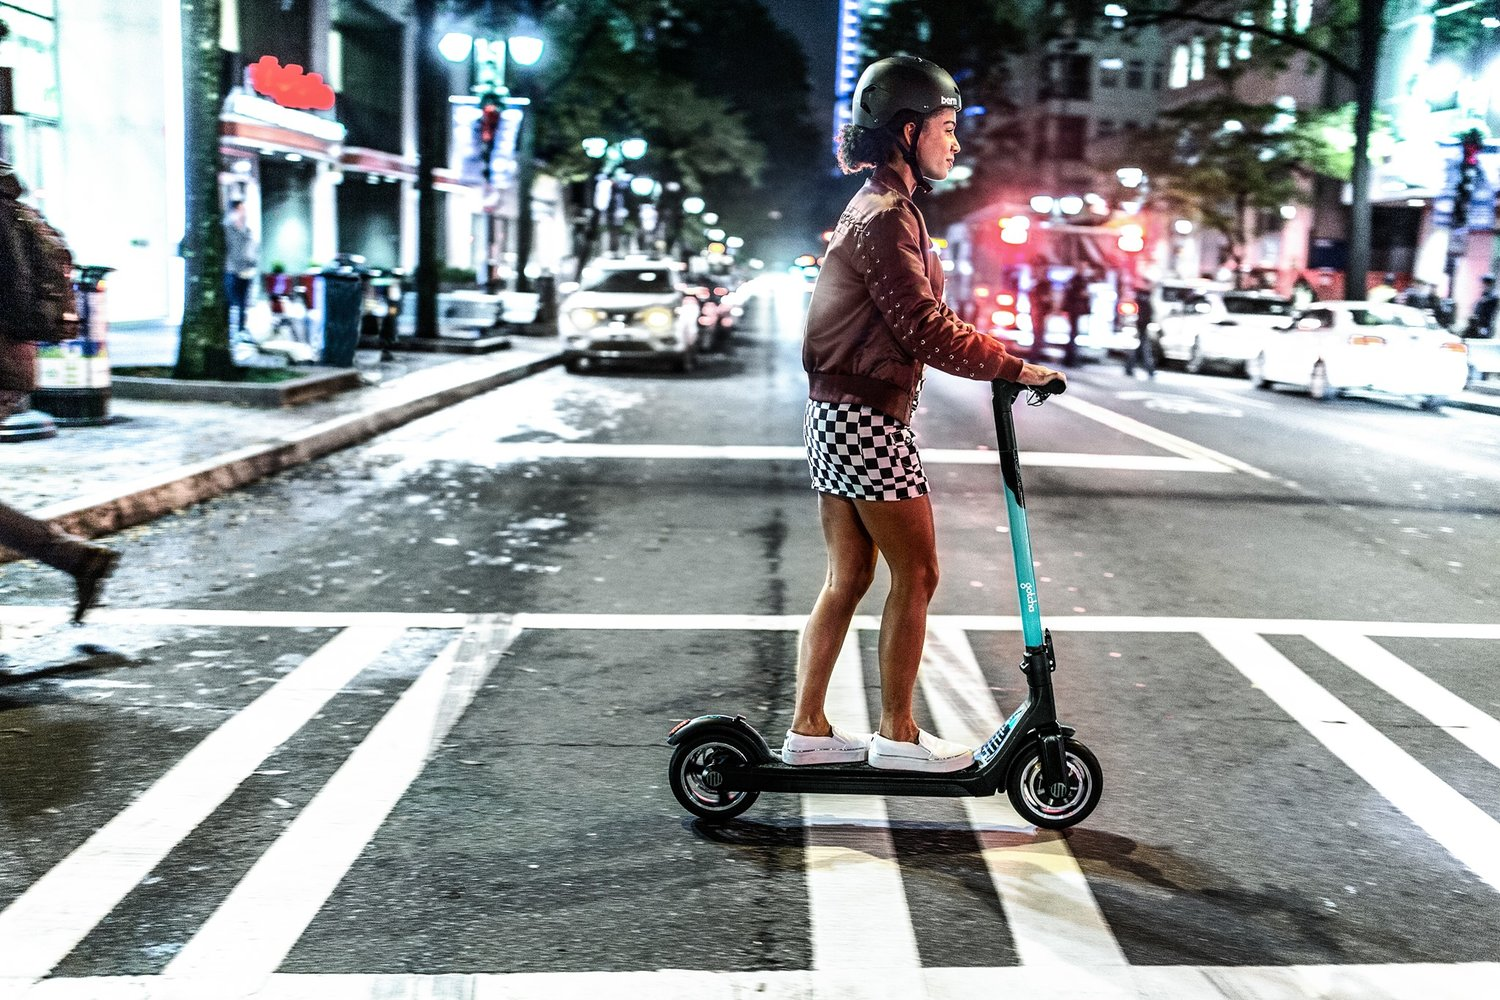 Promotional image of a woman riding a Gotcha scooter on a city cross-walk.